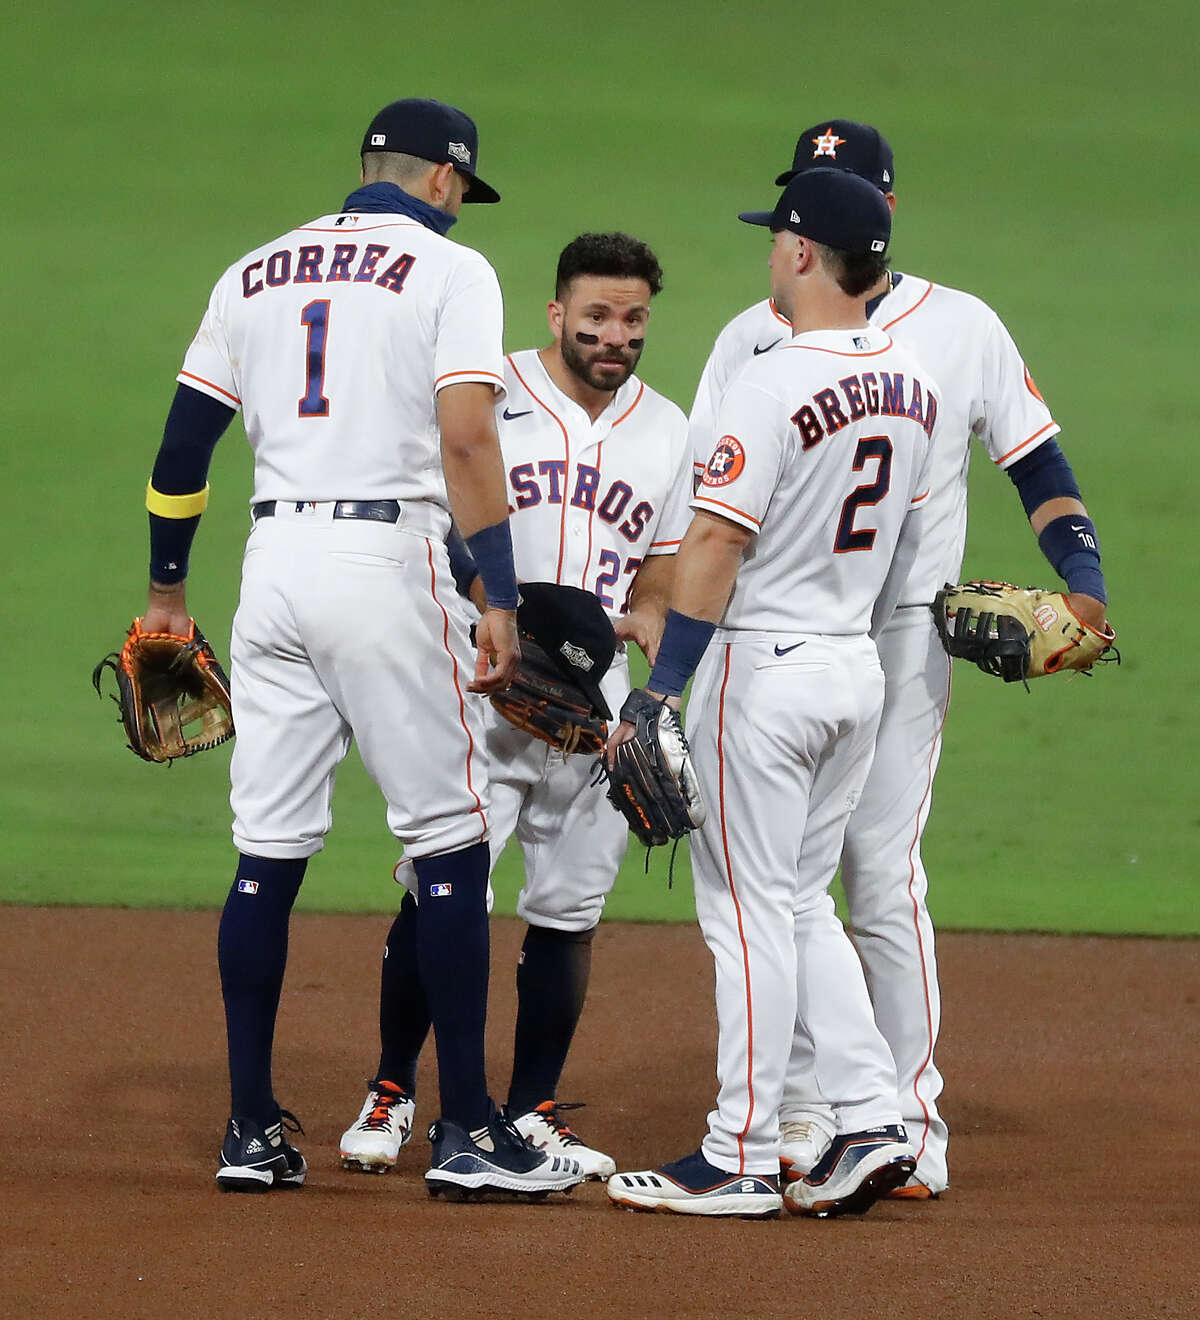 Houston Astros Jose Altuve (27) stands with teammates Carlos Correa (1) and Alex Bregman (2) and Yuli Gurriel after Altuve committed an error on a grounder by Tampa Bay Rays Brandon Lowe of Game 3 of the American League Championship Series at Petco Park Tuesday, Oct. 13, 2020, in San Diego.